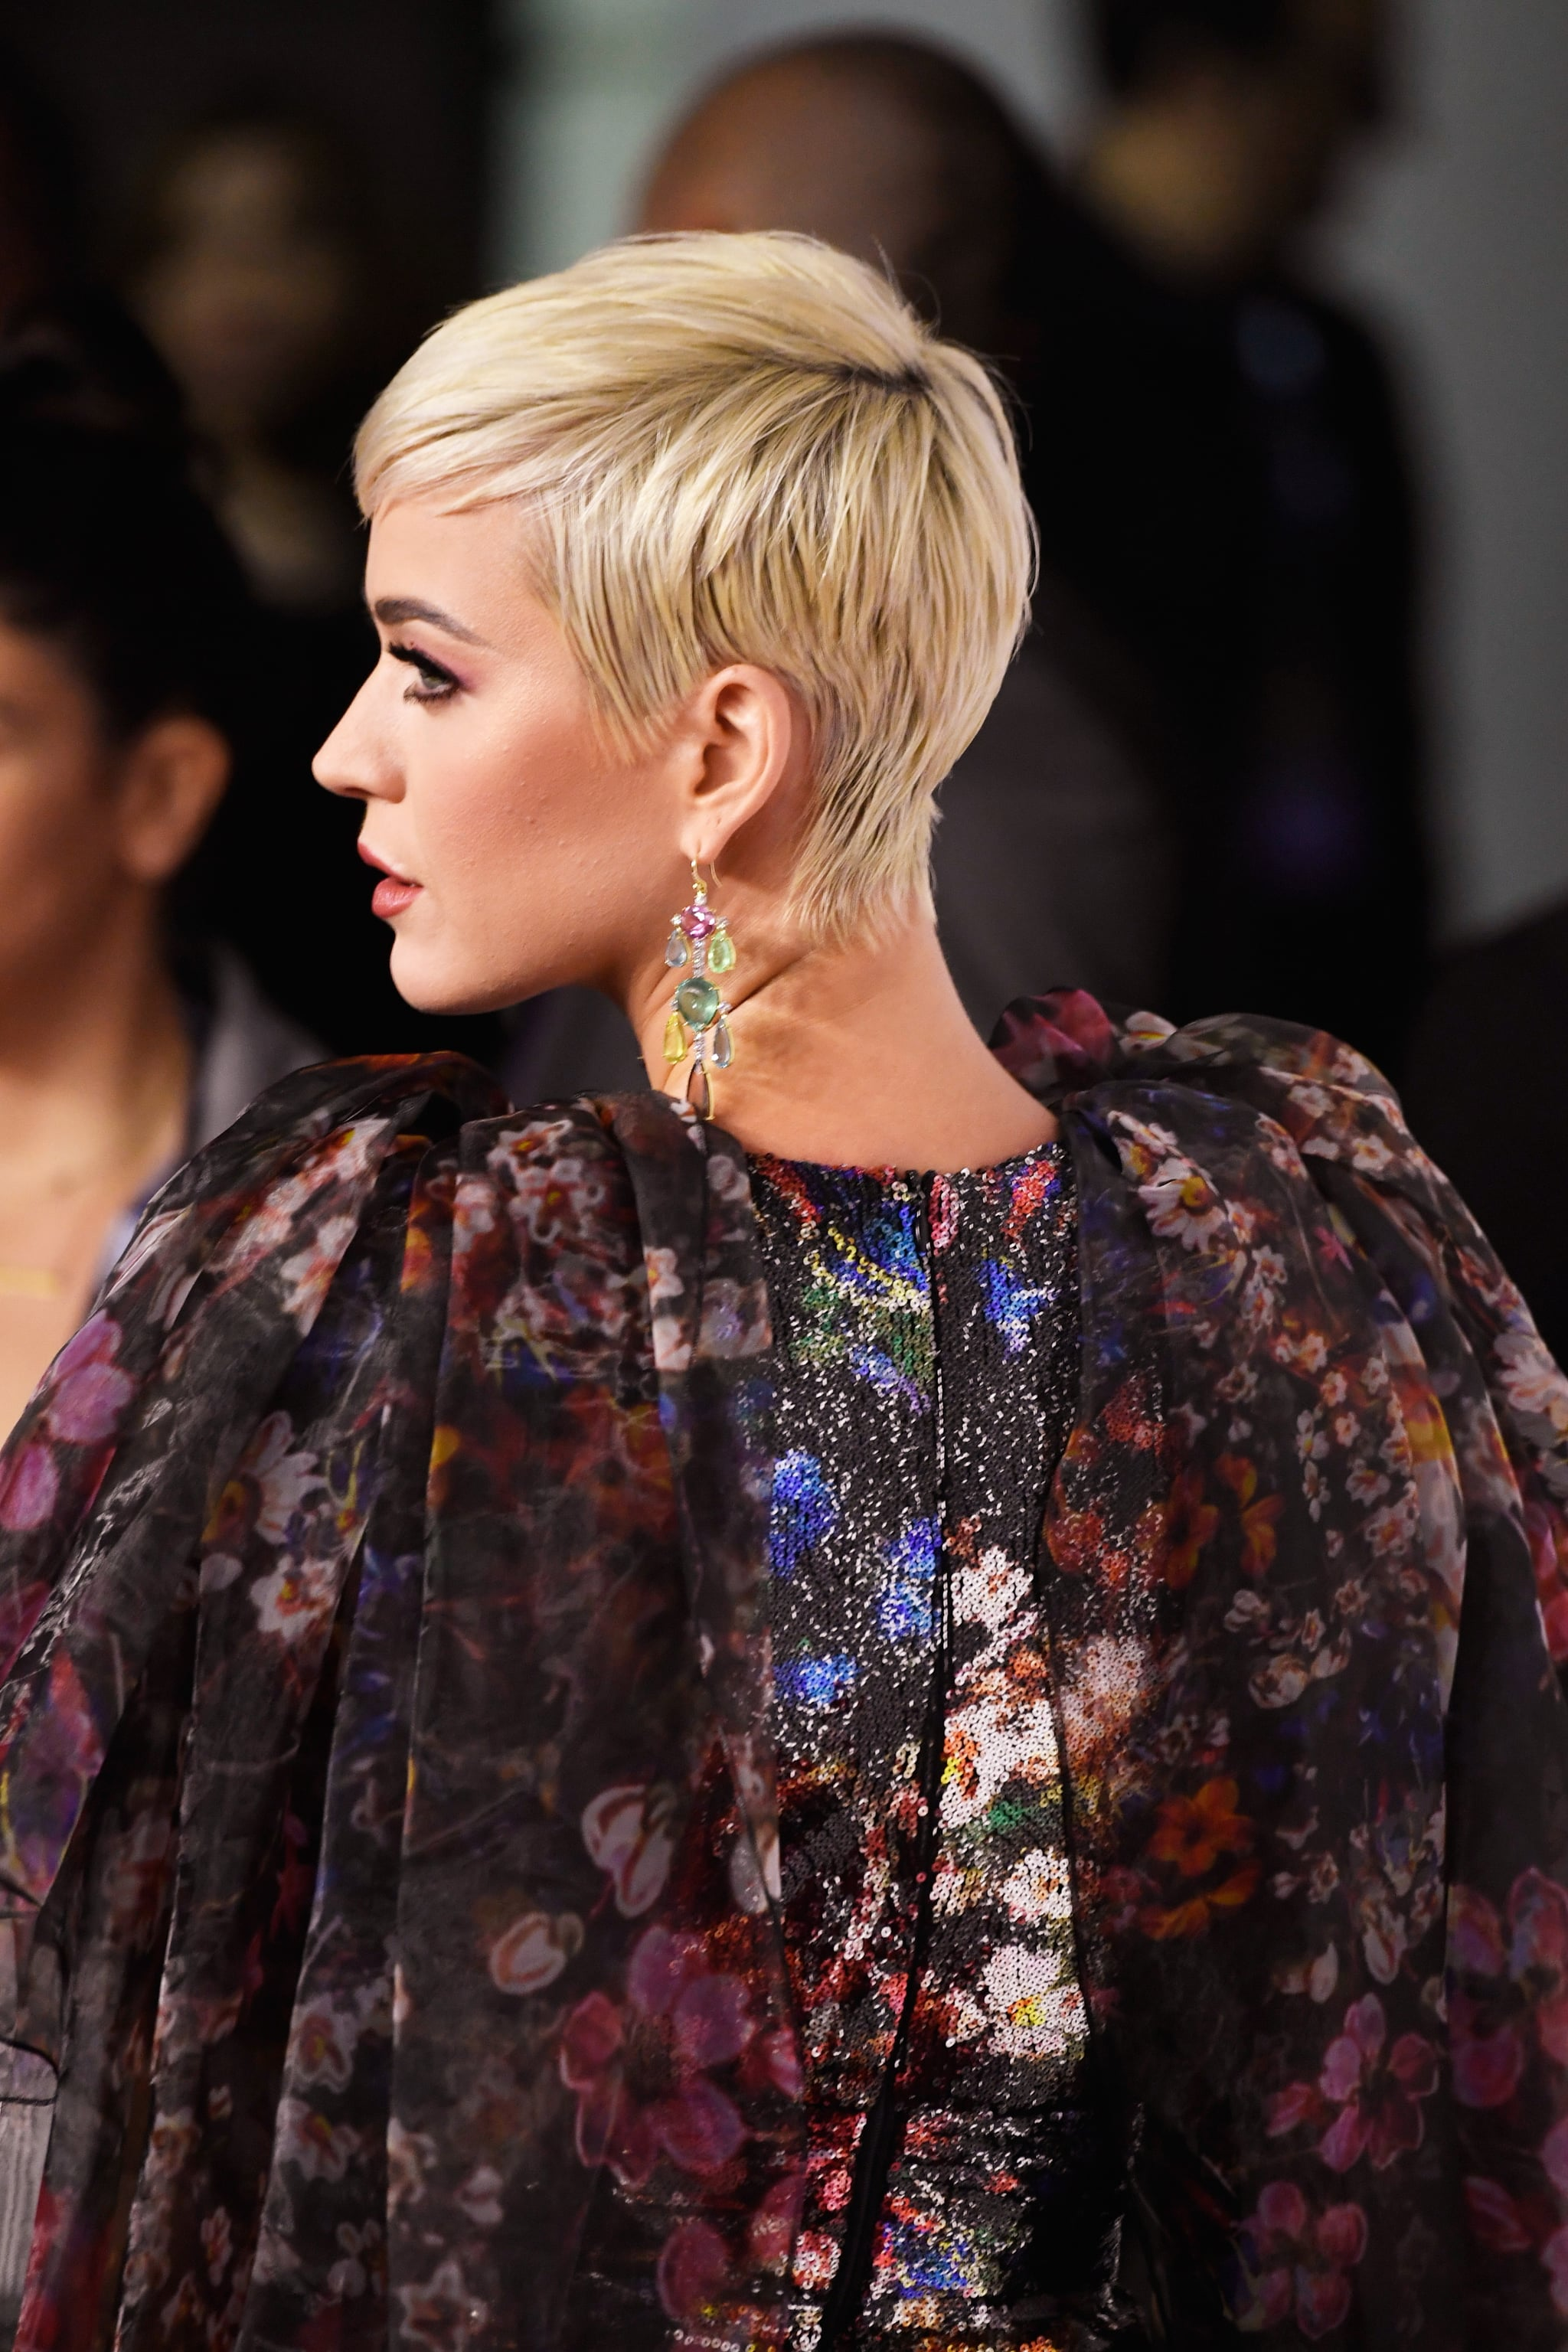 Katy Perry With A Pixie Cut 45 Celebrity Pixie Haircuts That Will Make You Want To Chop Your Hair Short Popsugar Beauty Photo 39